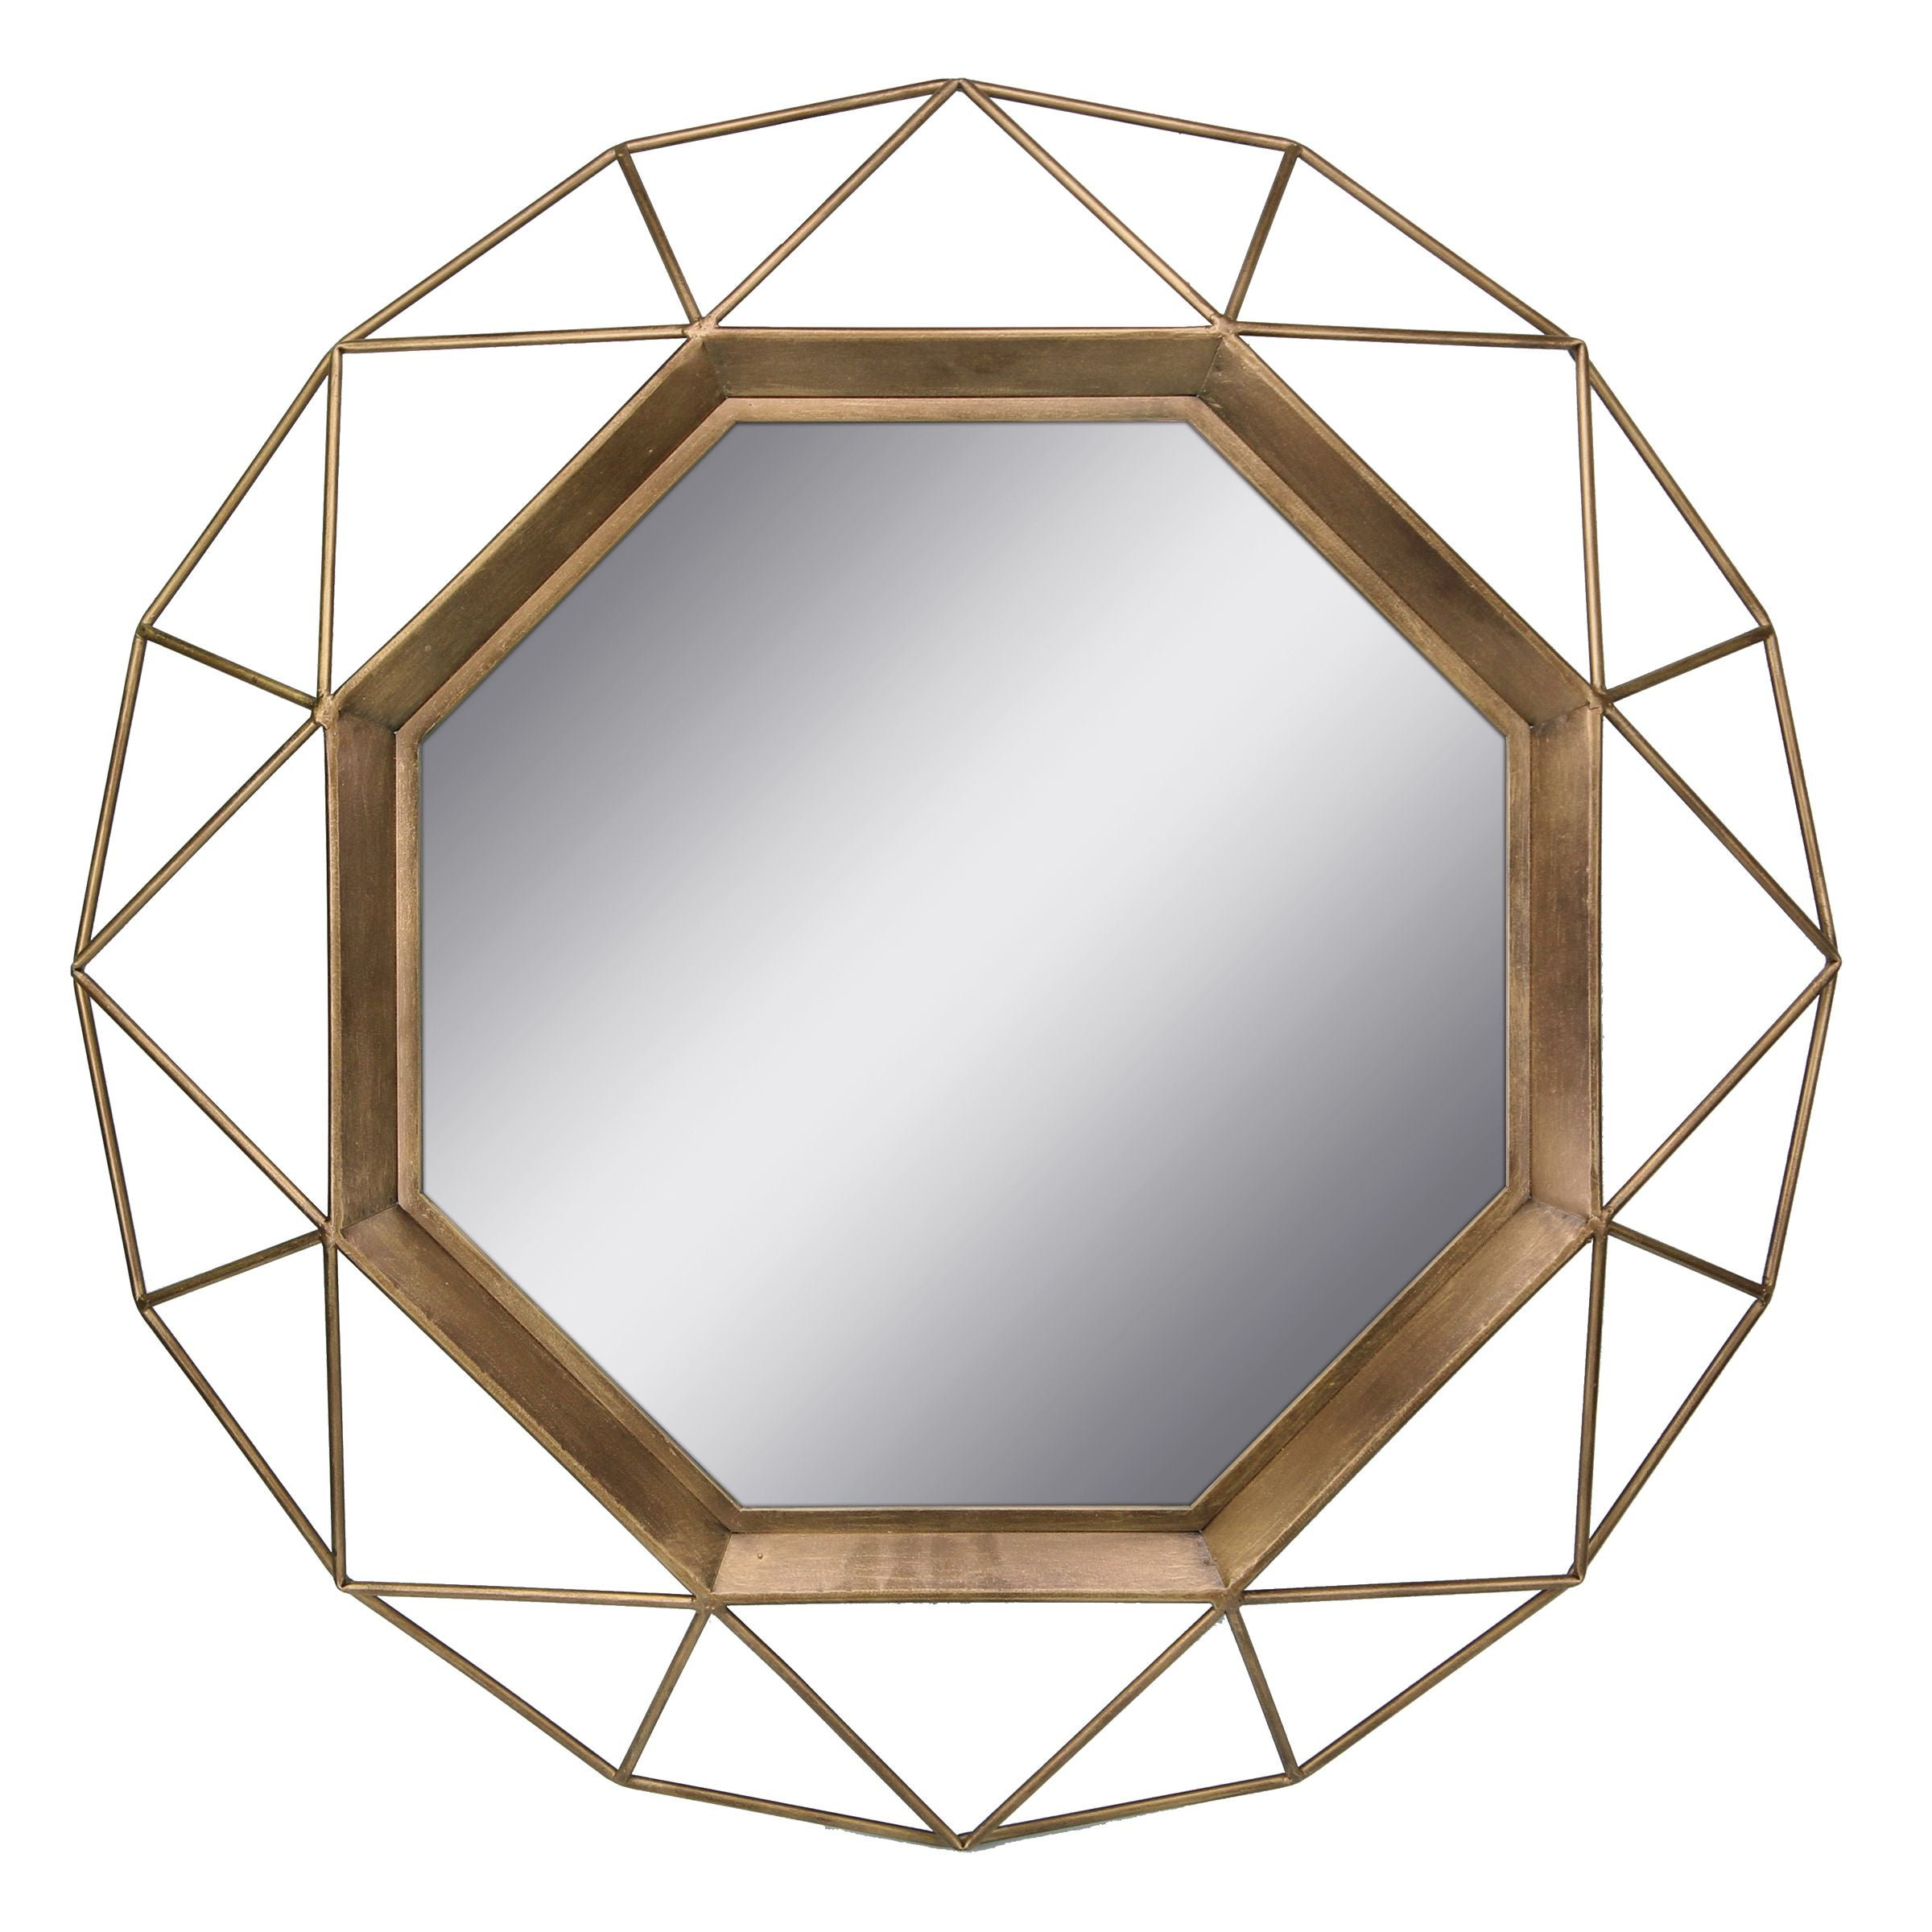 Antique Gold Geometric Mirror - 30 Inch